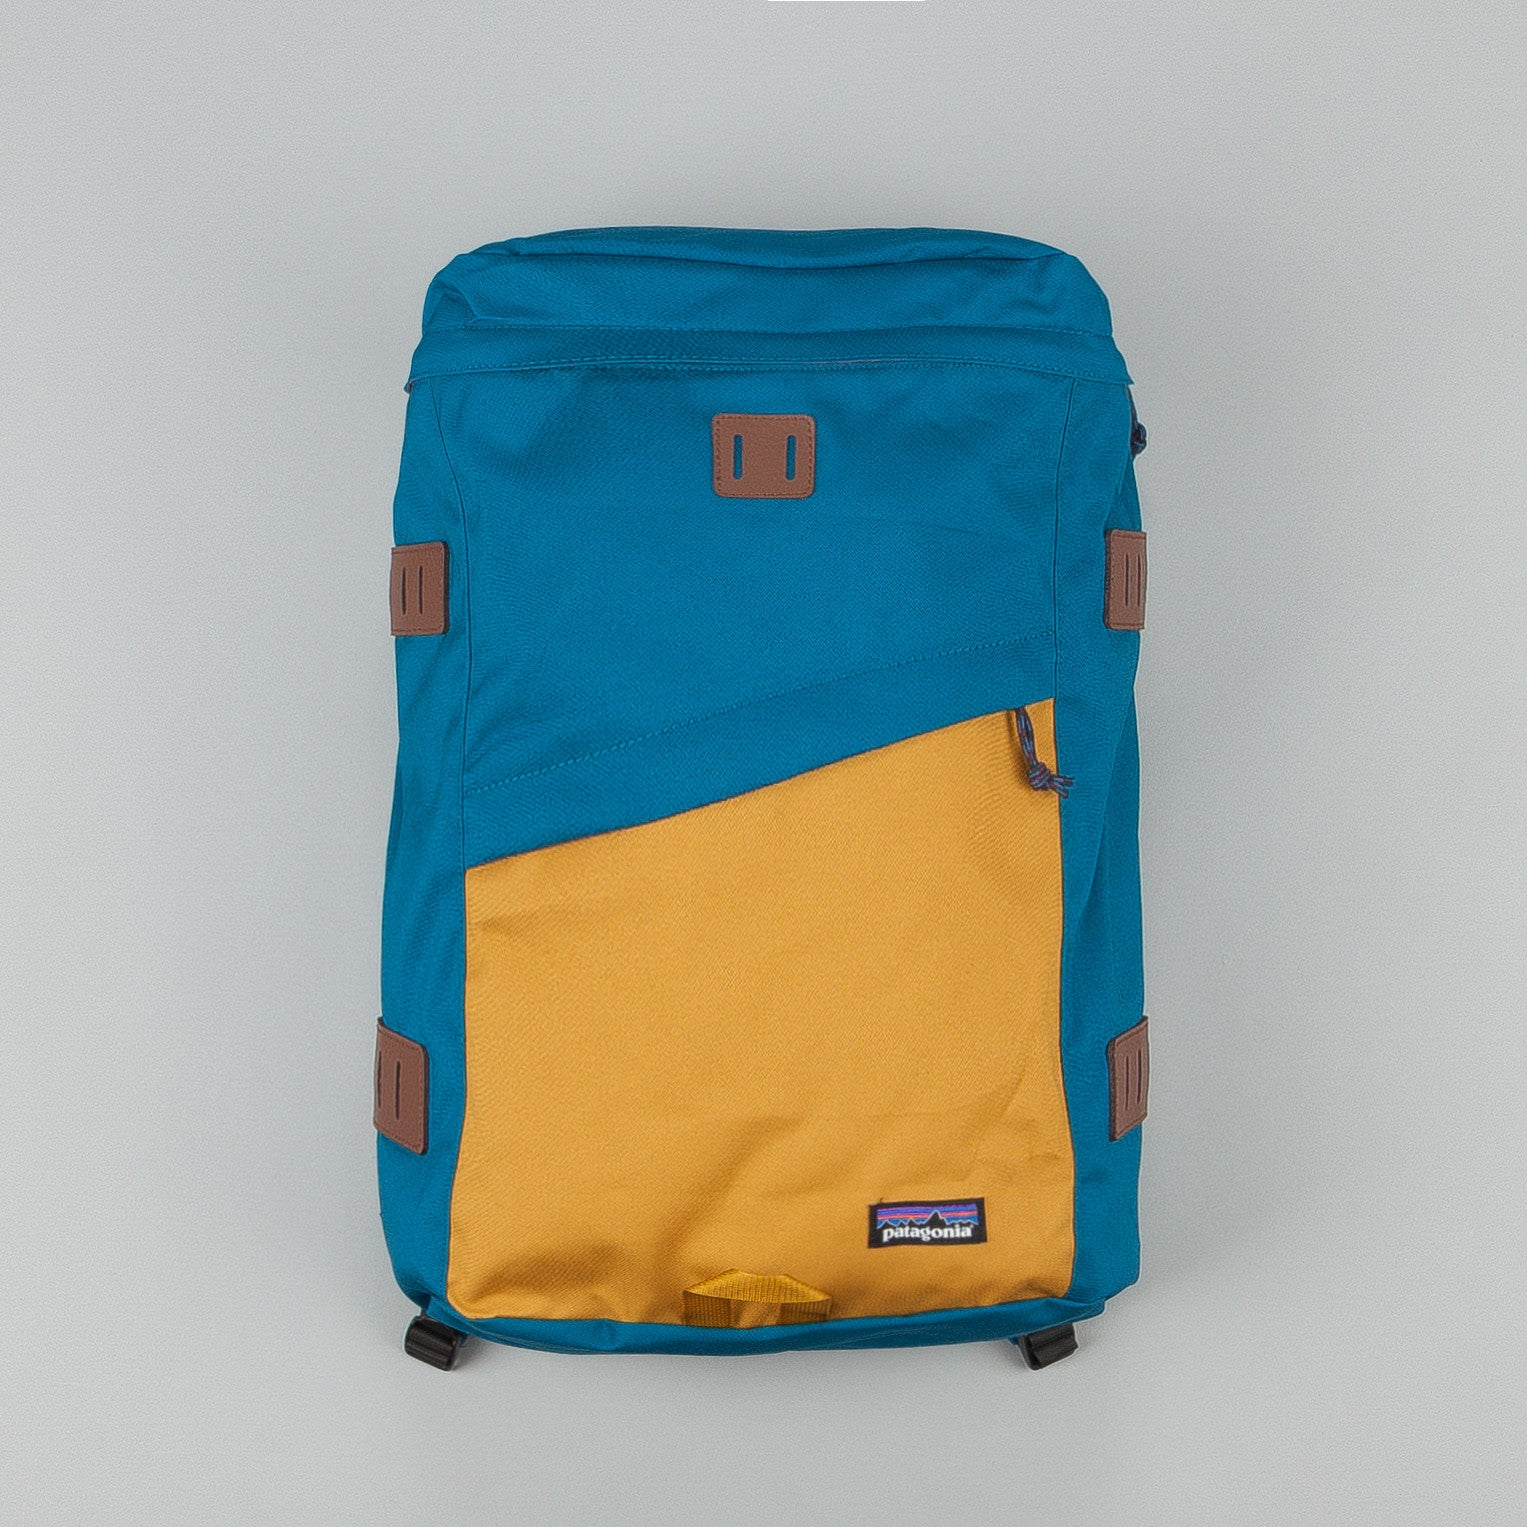 Patagonia Toromiro Backpack